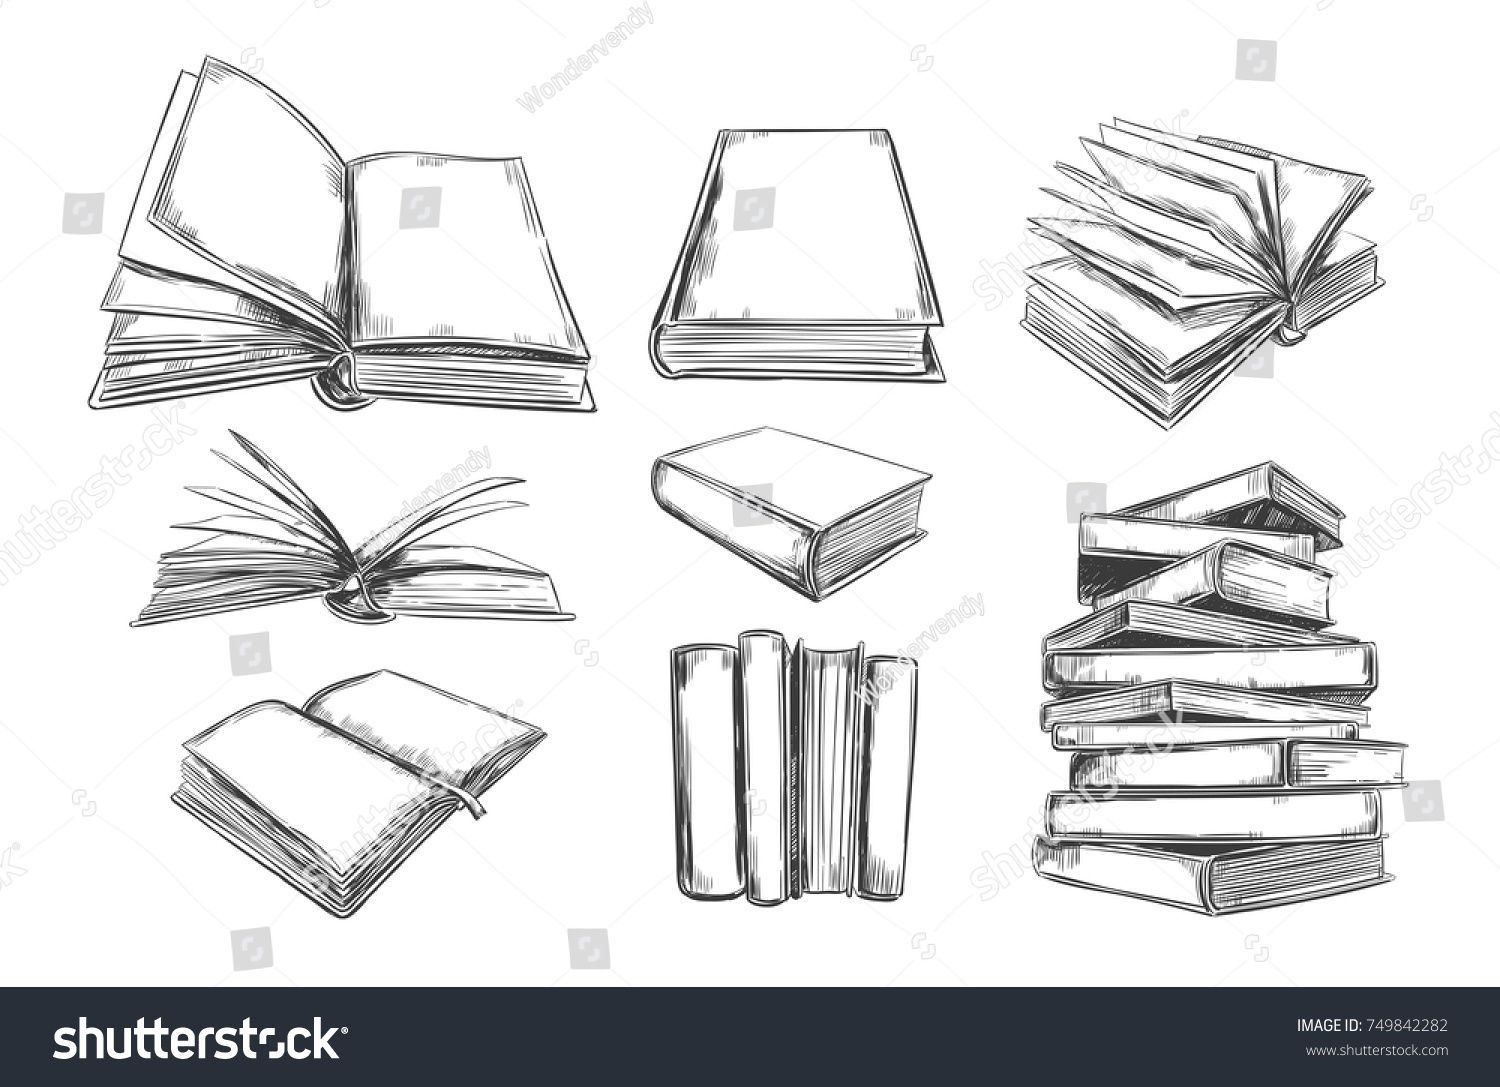 Books Vector Collection Pile Of Books Hand Drawn Illustration In Sketch Style Library Books Shop Ad How To Draw Hands Pile Of Books Drawing Illustration